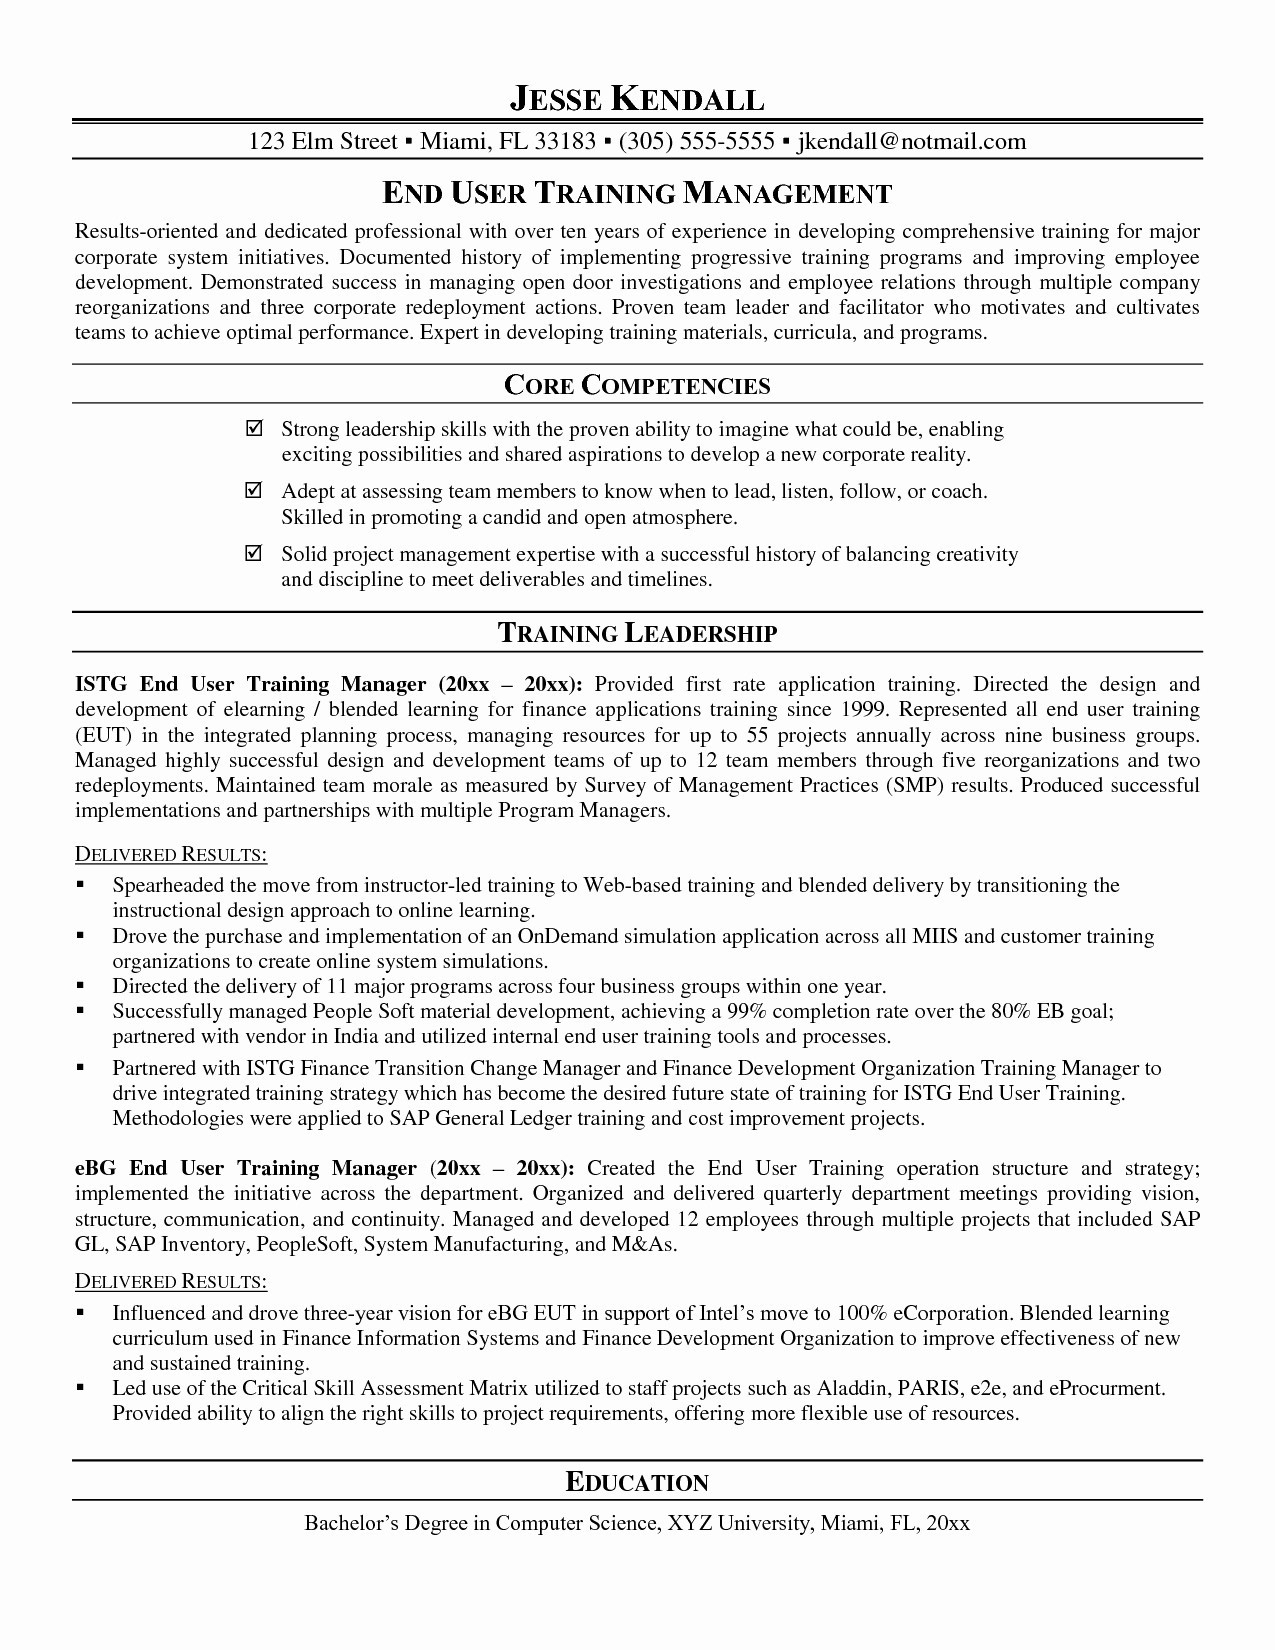 List Of Core Competencies Resume Examples - 25 Core Petencies Resume Examples